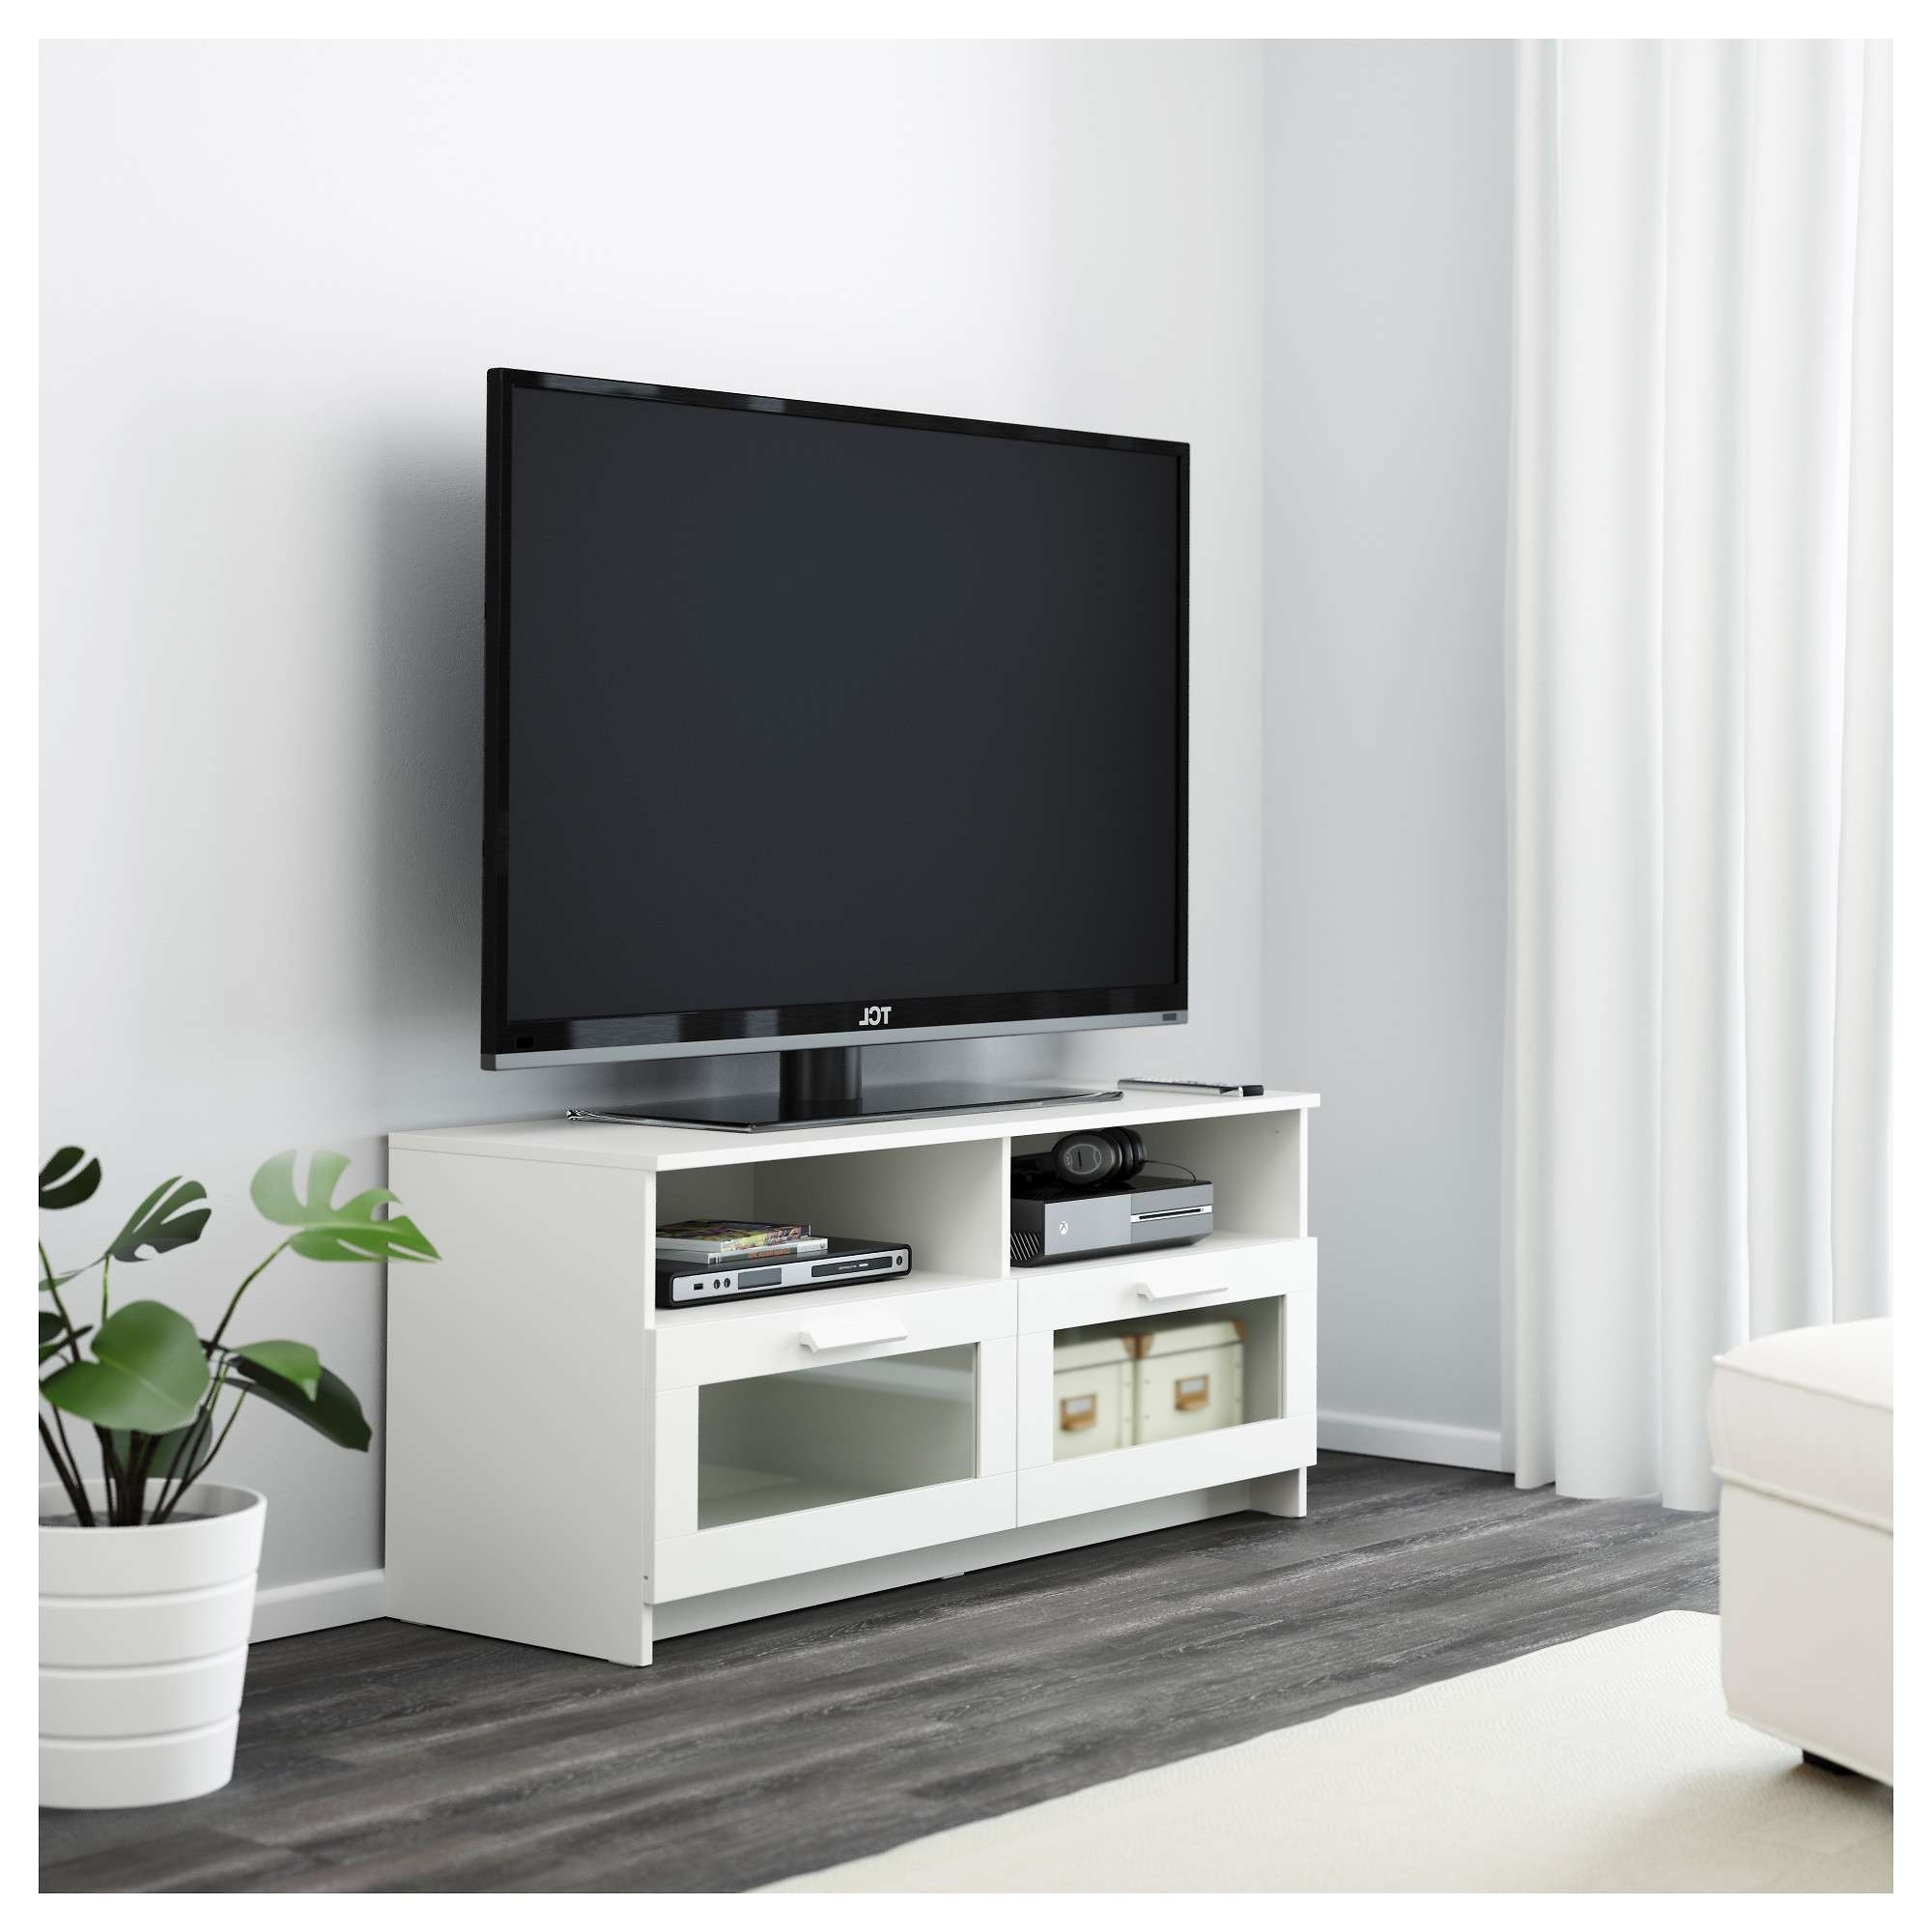 Ikea Tv Stan ~ Theshaggsonline Pertaining To Bench Tv Stands (Gallery 7 of 15)